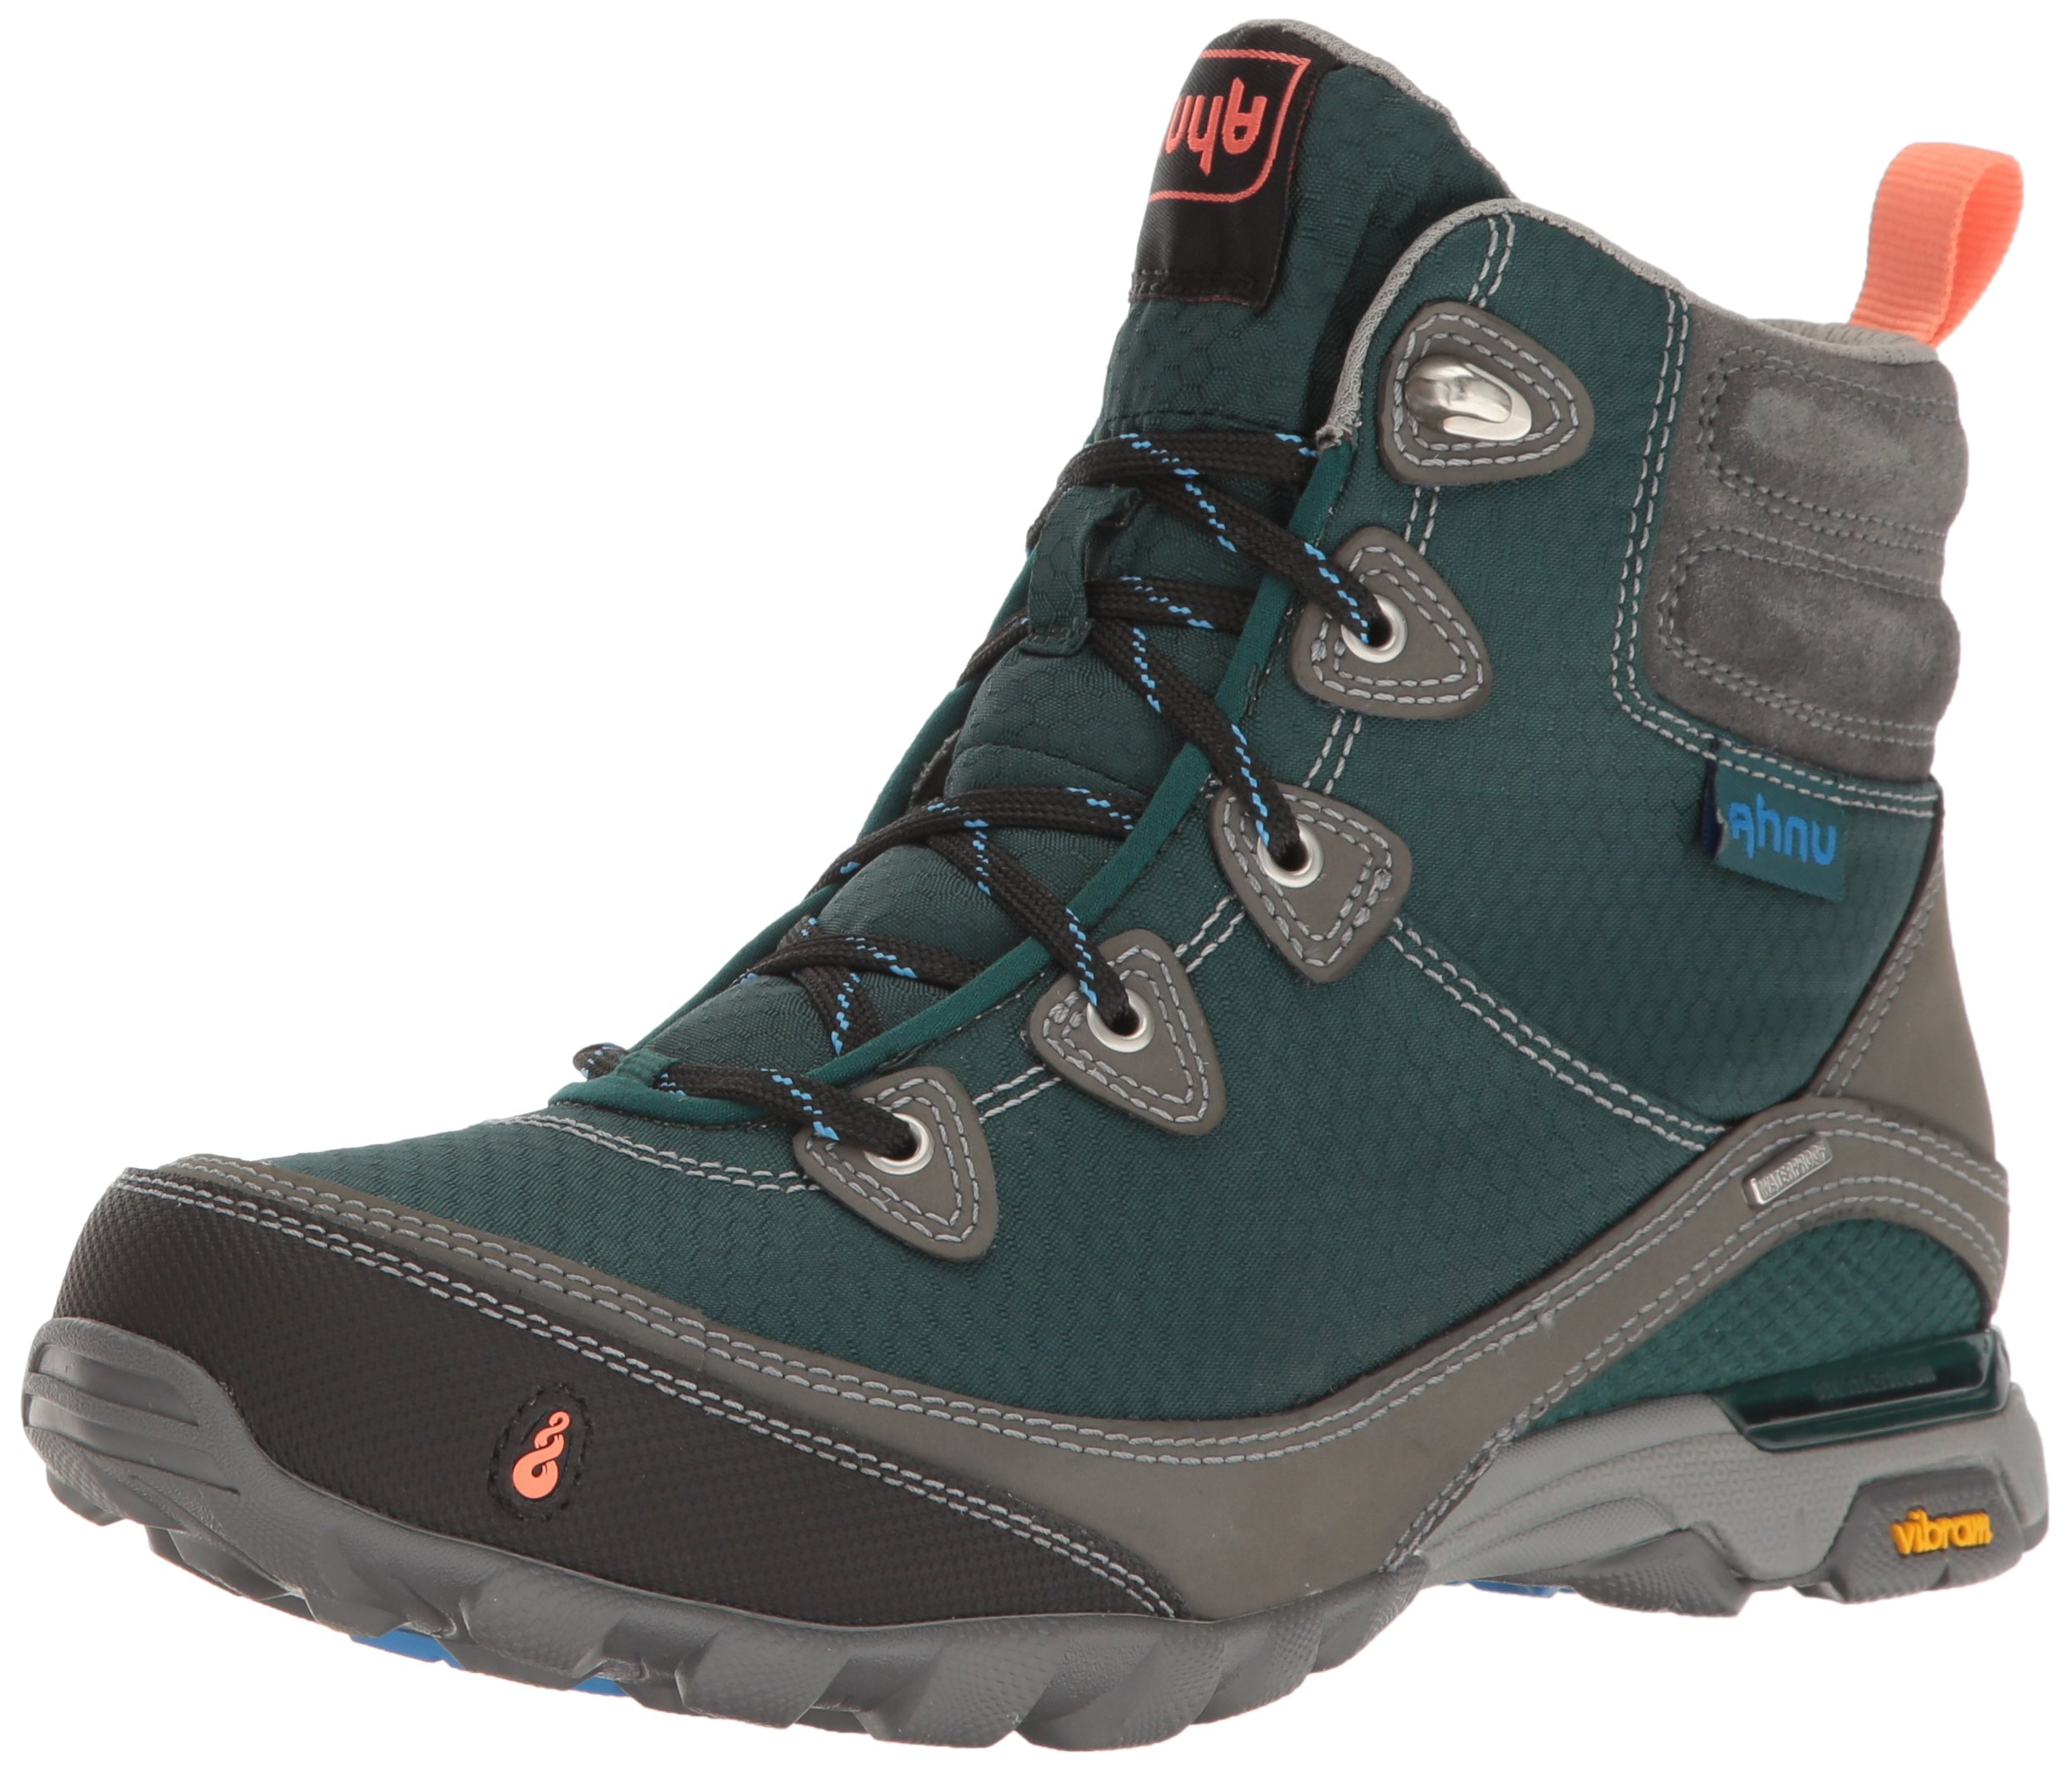 Ahnu Women's W Sugarpine Waterproof Hiking Boot, Muir Green, 9.5 M US